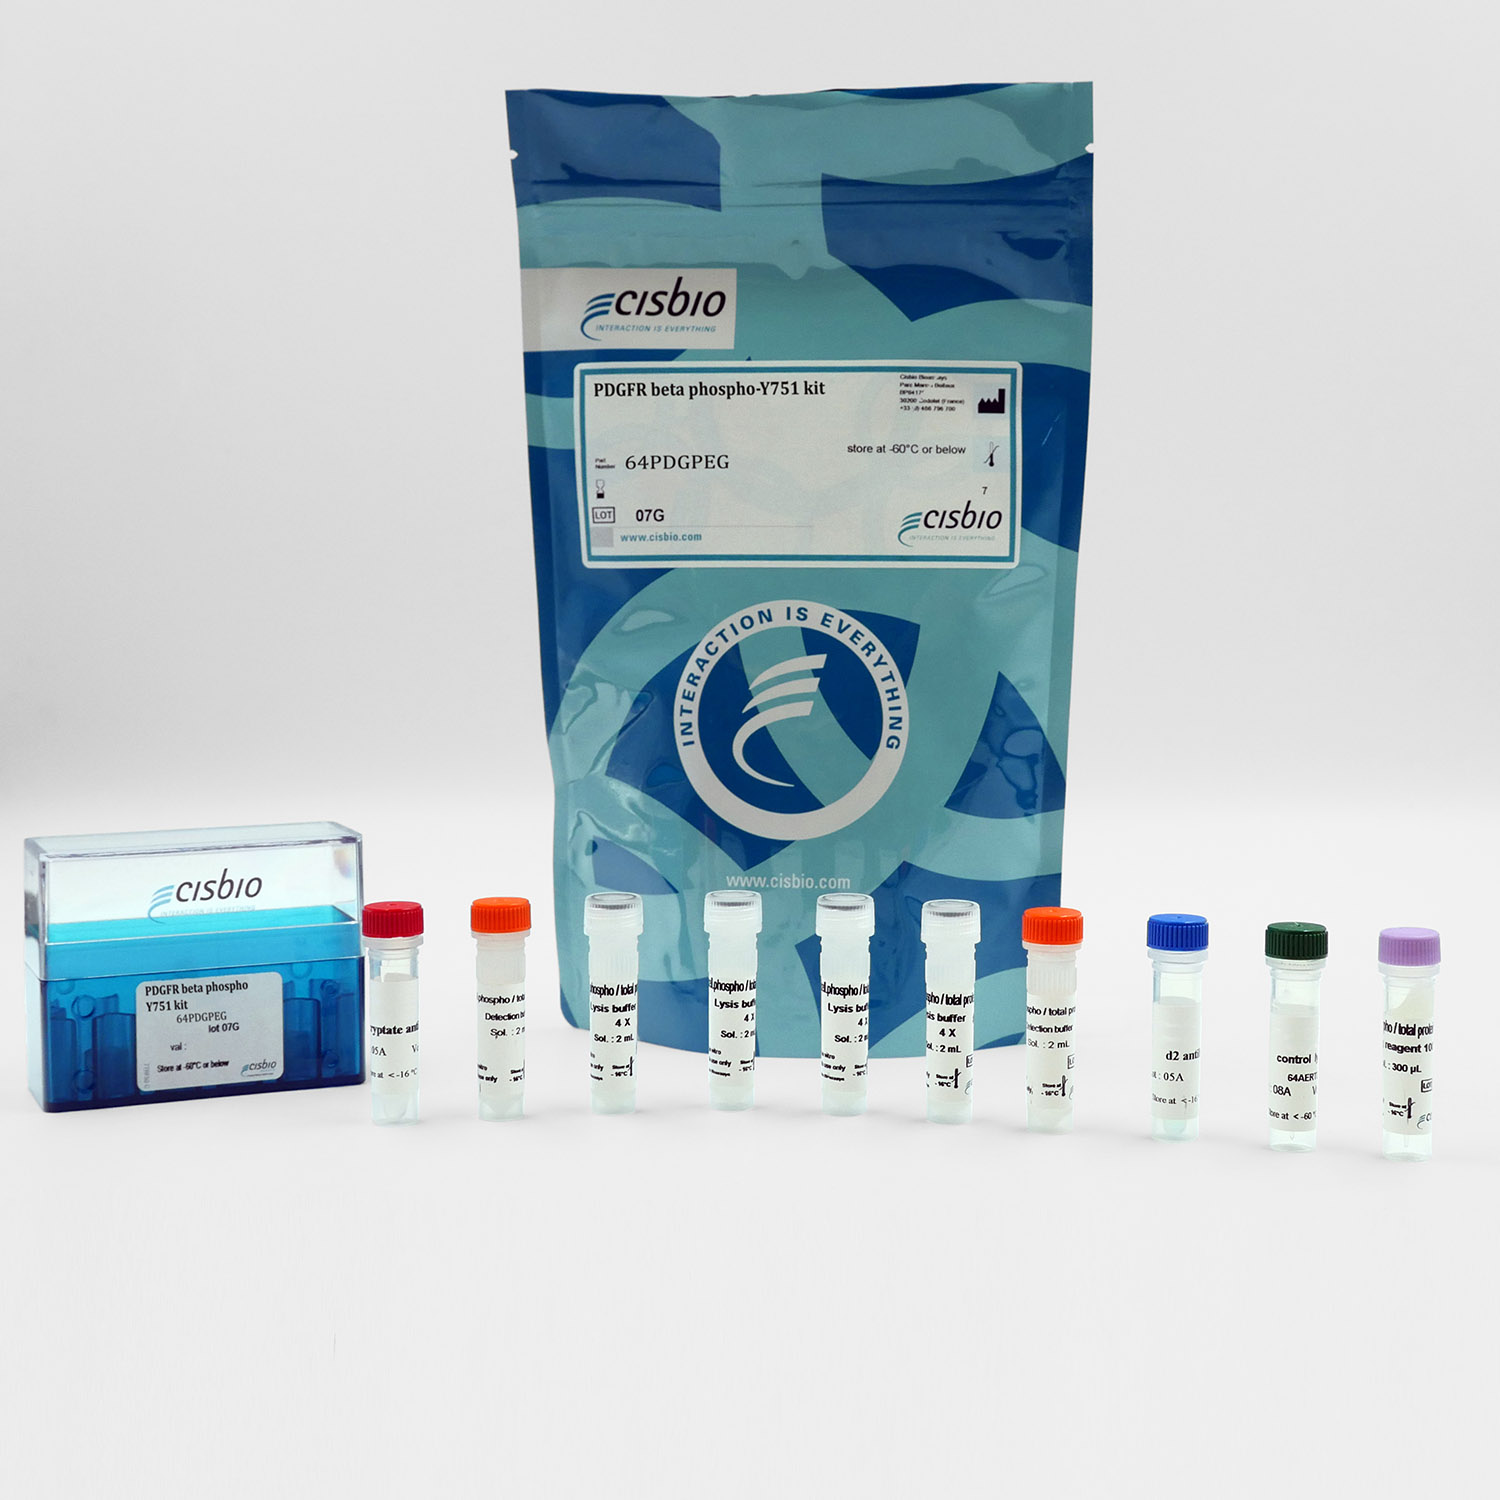 Phospho-PDGFR beta (Tyr751) cellular kit